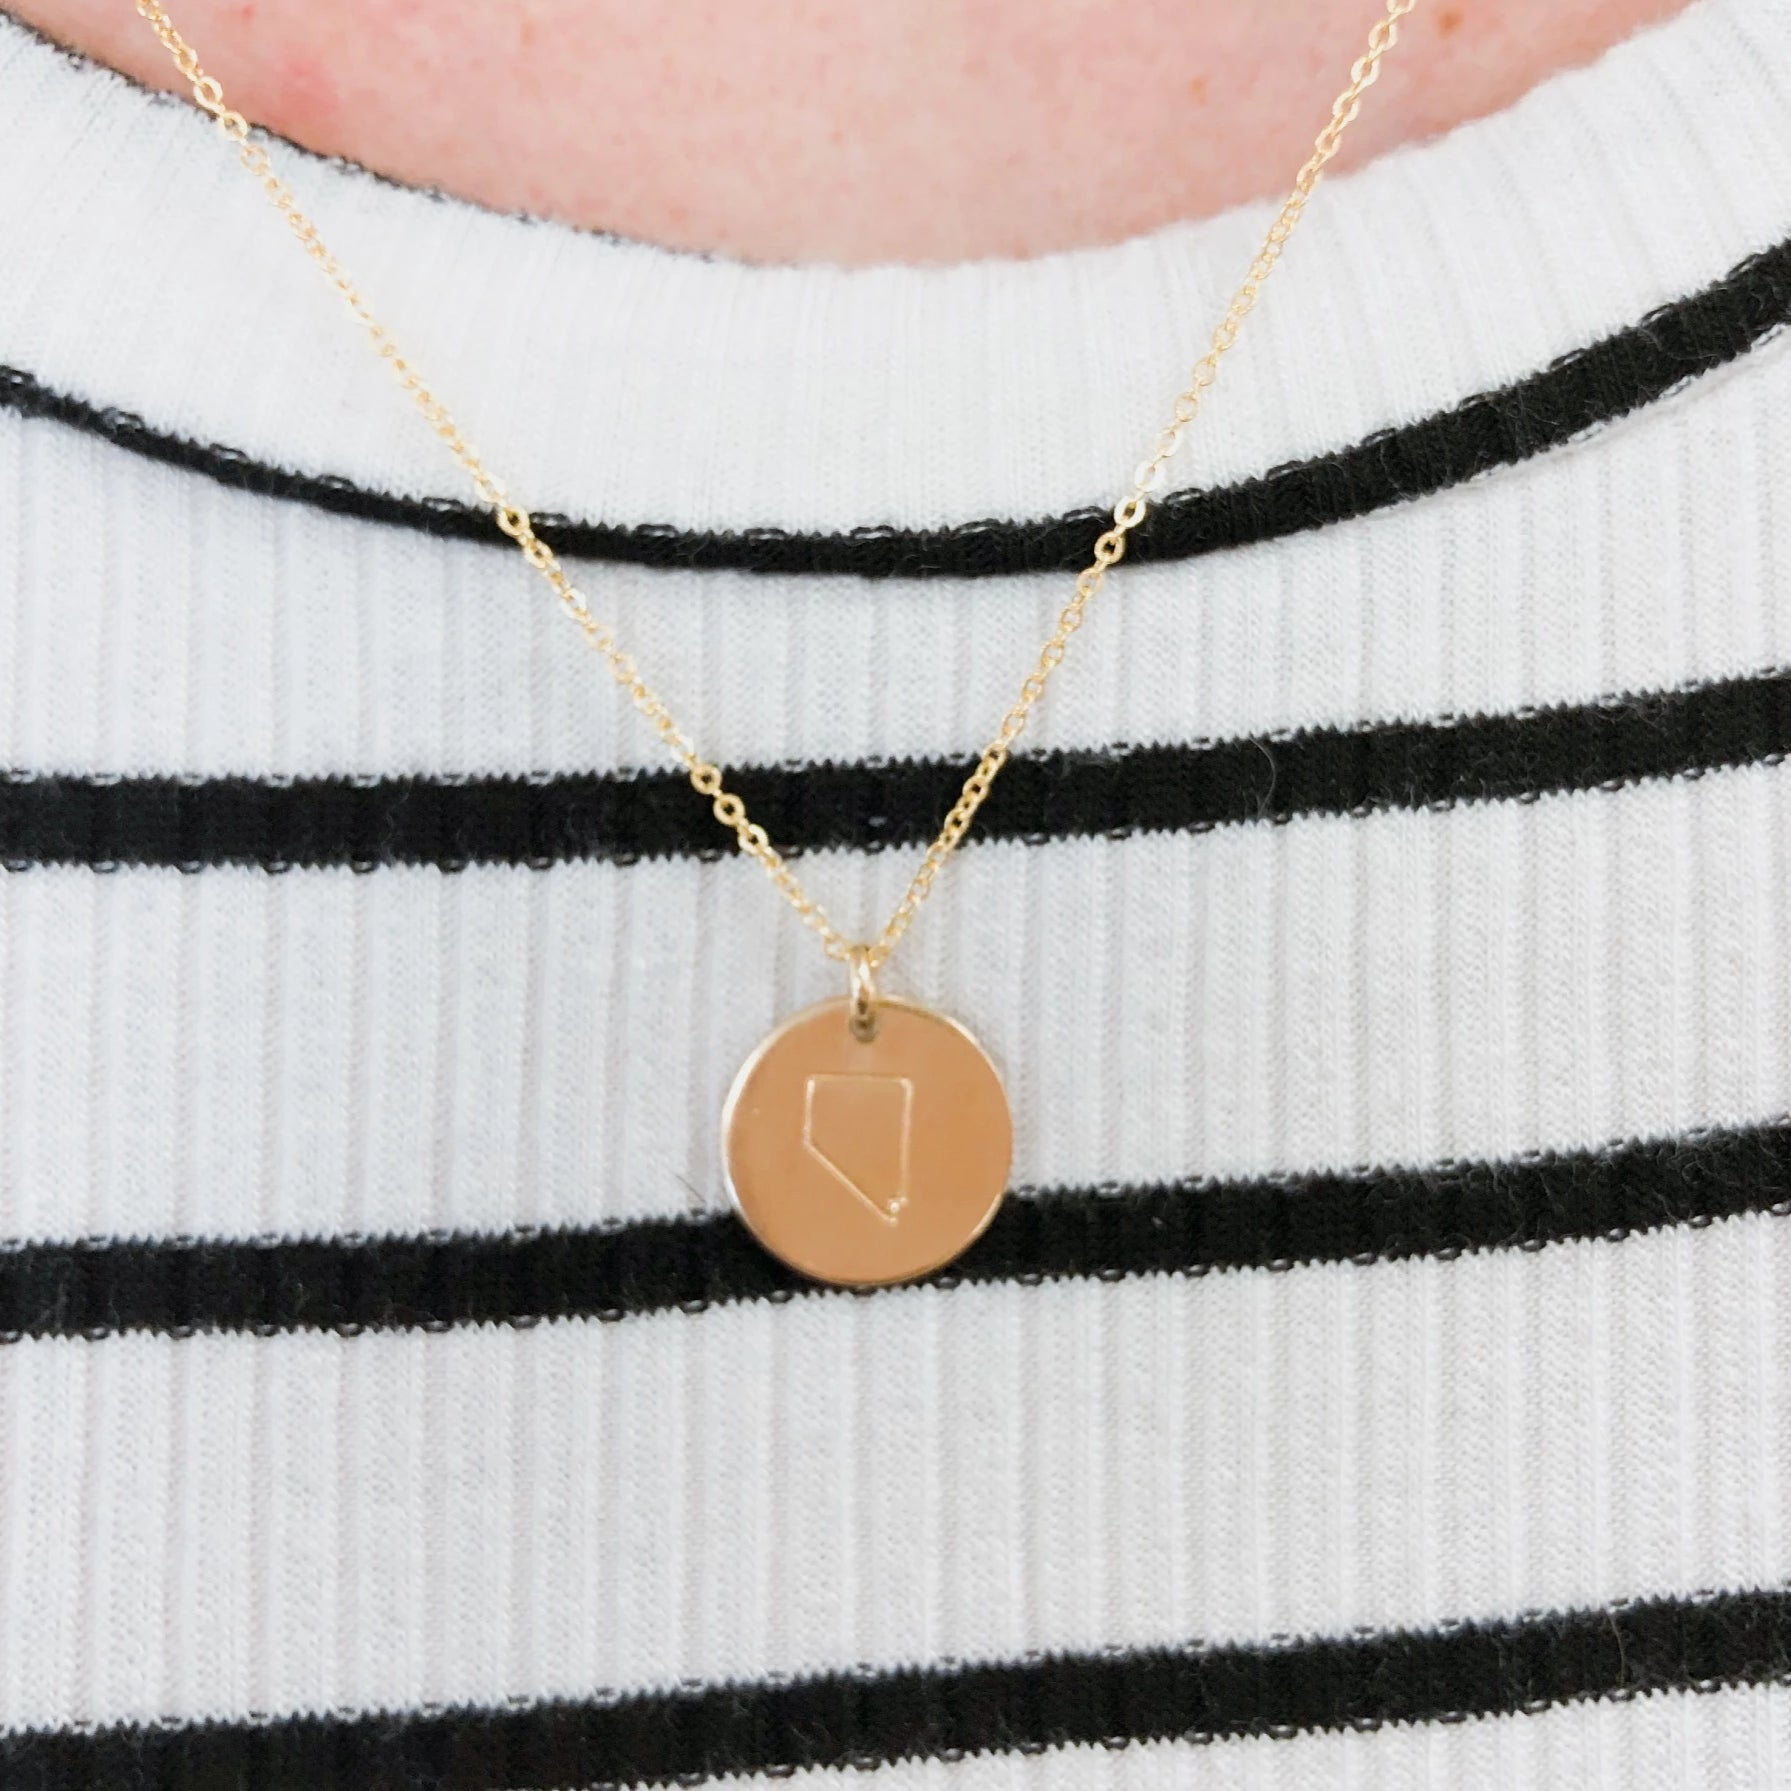 STATE DISC NECKLACE - GOLD FILLED - MADE BY MARY